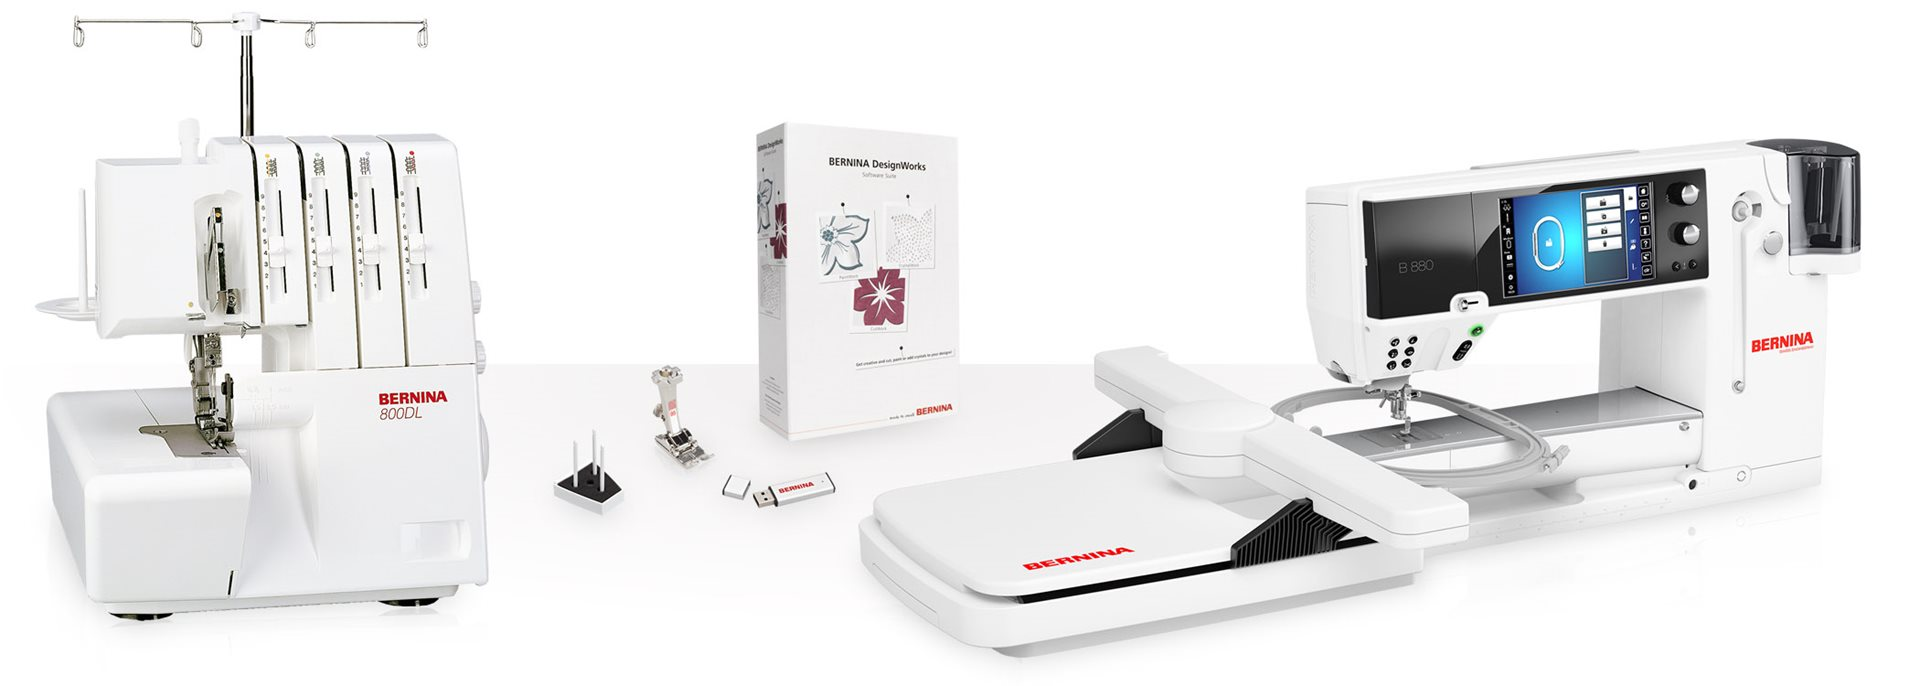 Picture: BERNINA products